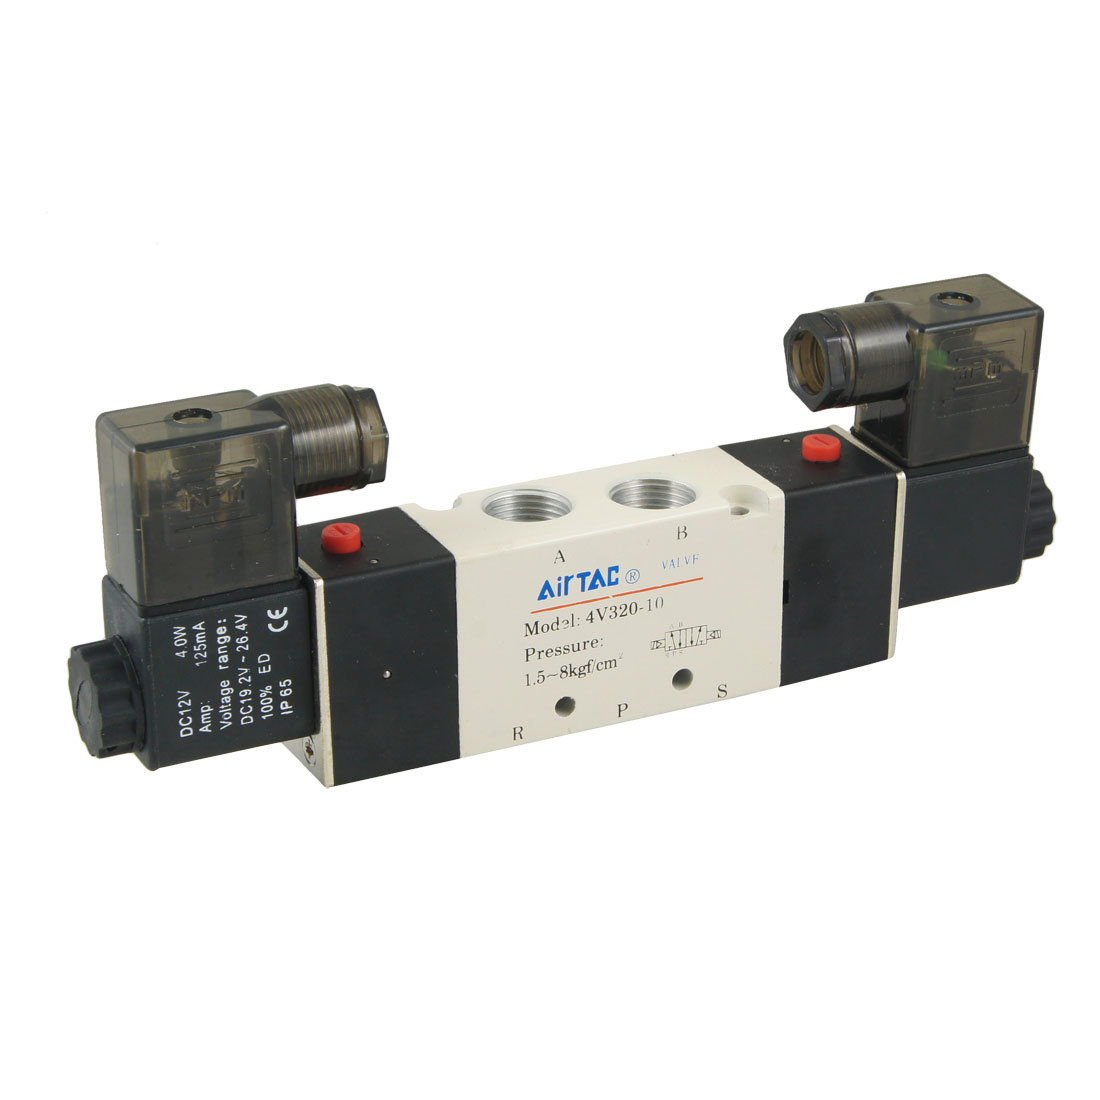 4V320-10 DC 12V 125mA 2 Positions 5 Ways Air Control Solenoid Valve